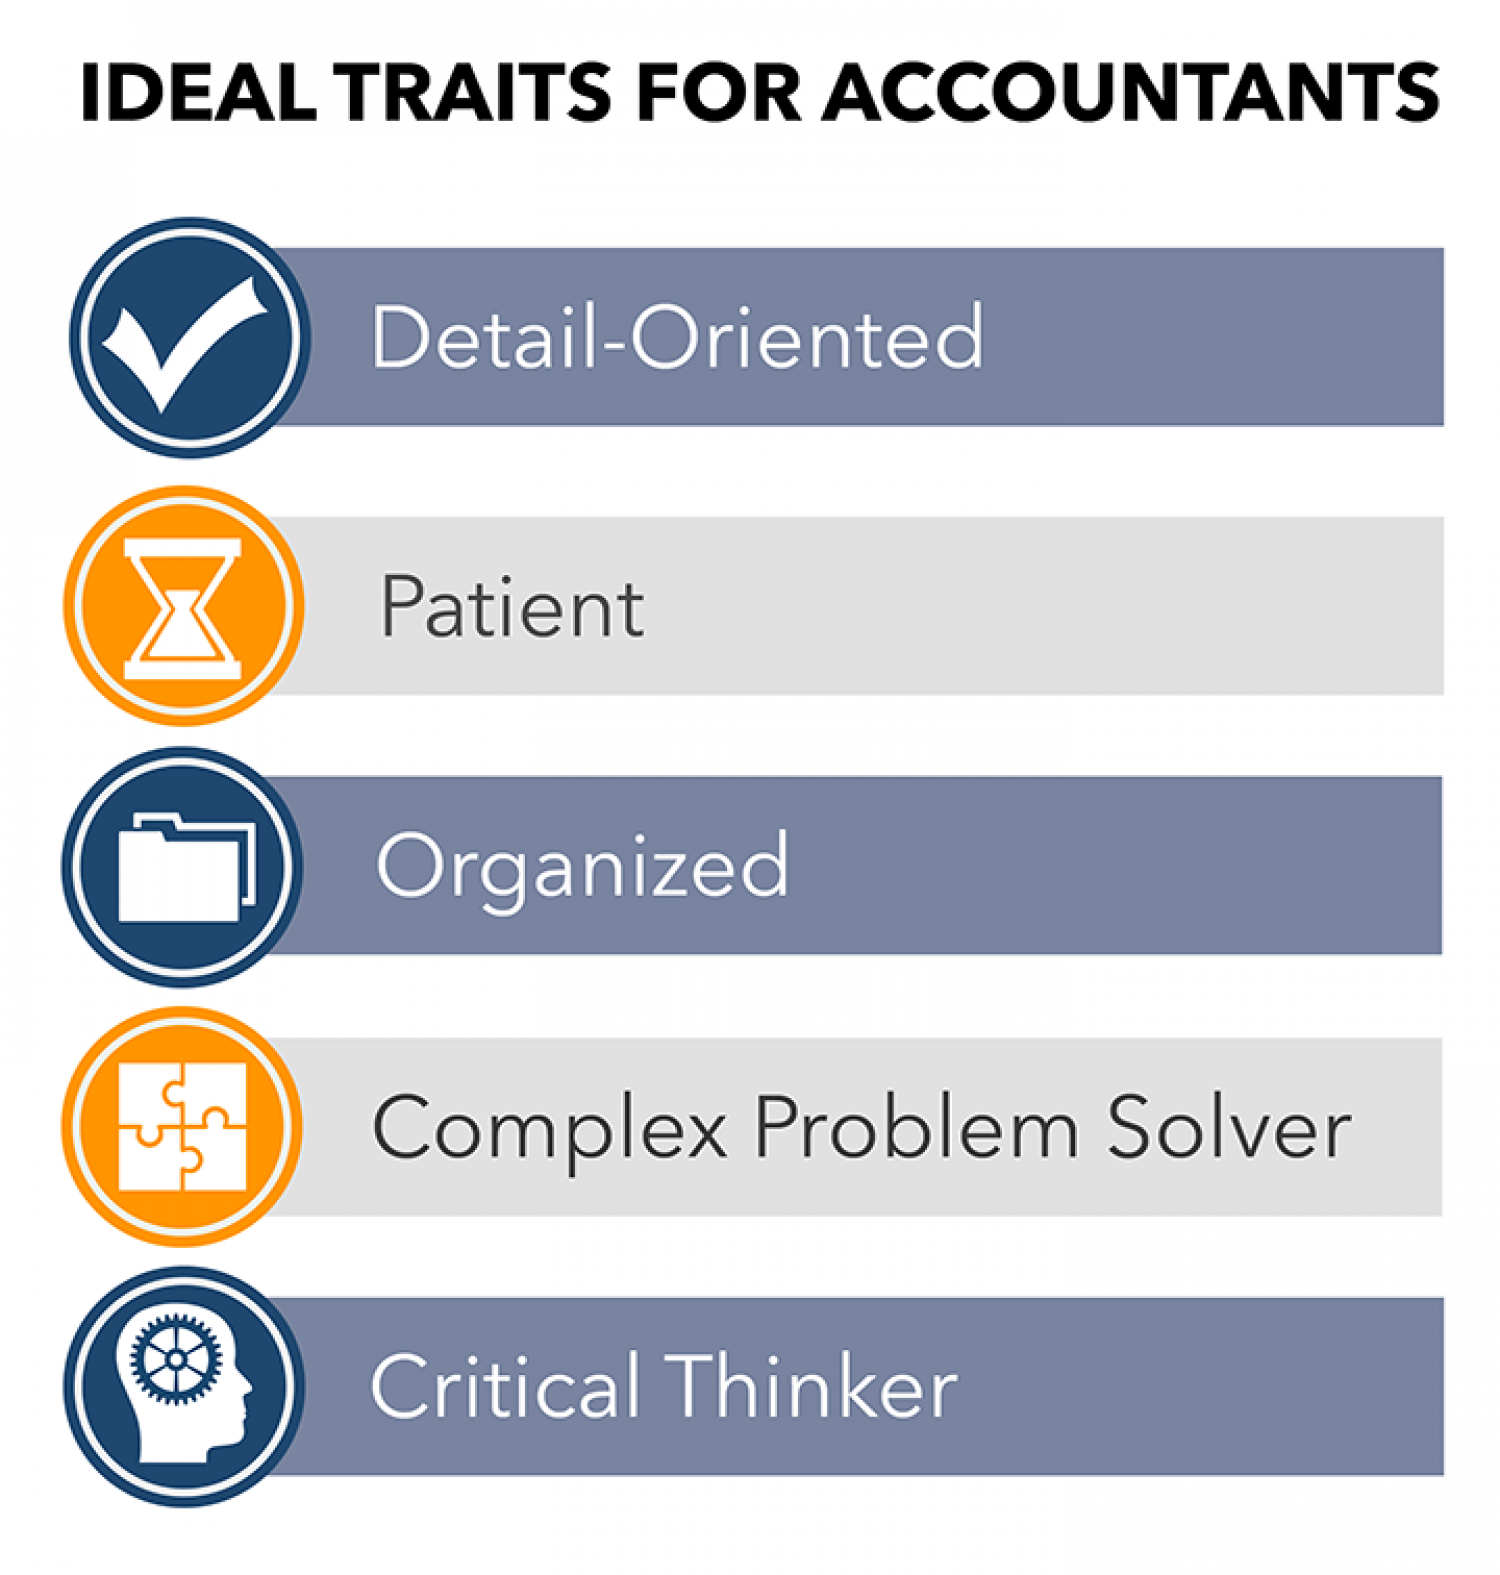 Traits of Accountants Infographic